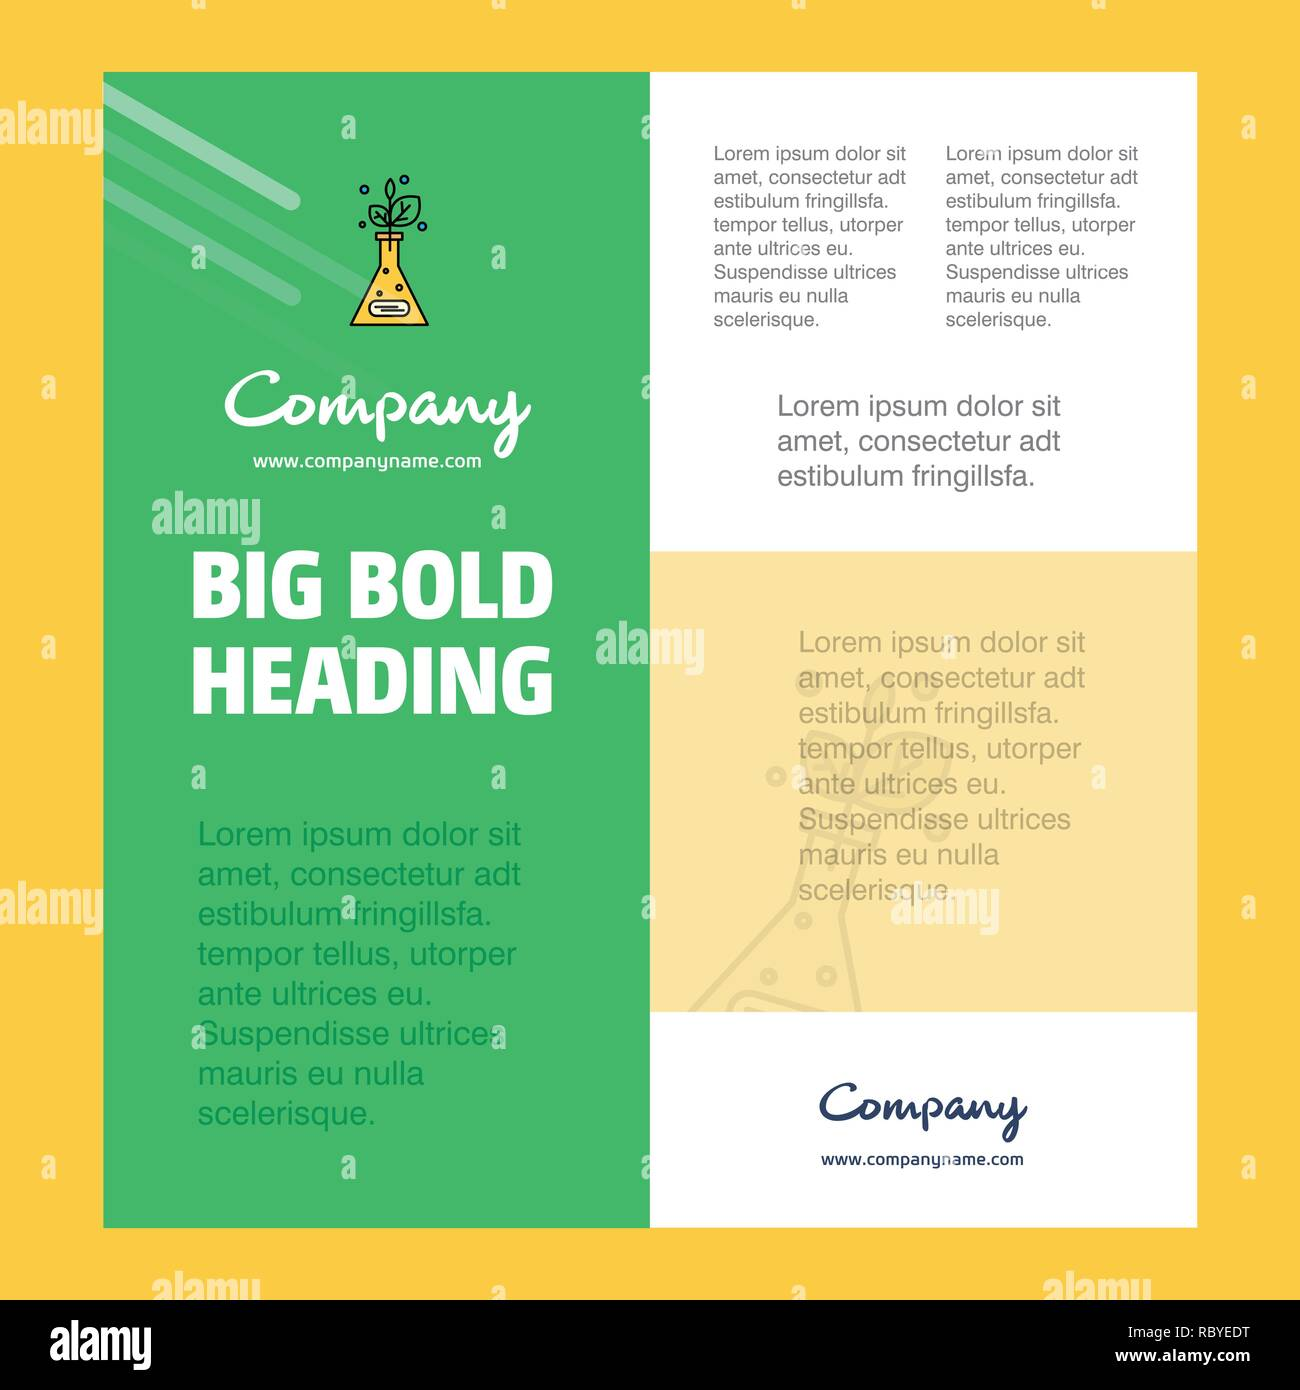 Plant  Business Company Poster Template. with place for text and images. vector background - Stock Vector